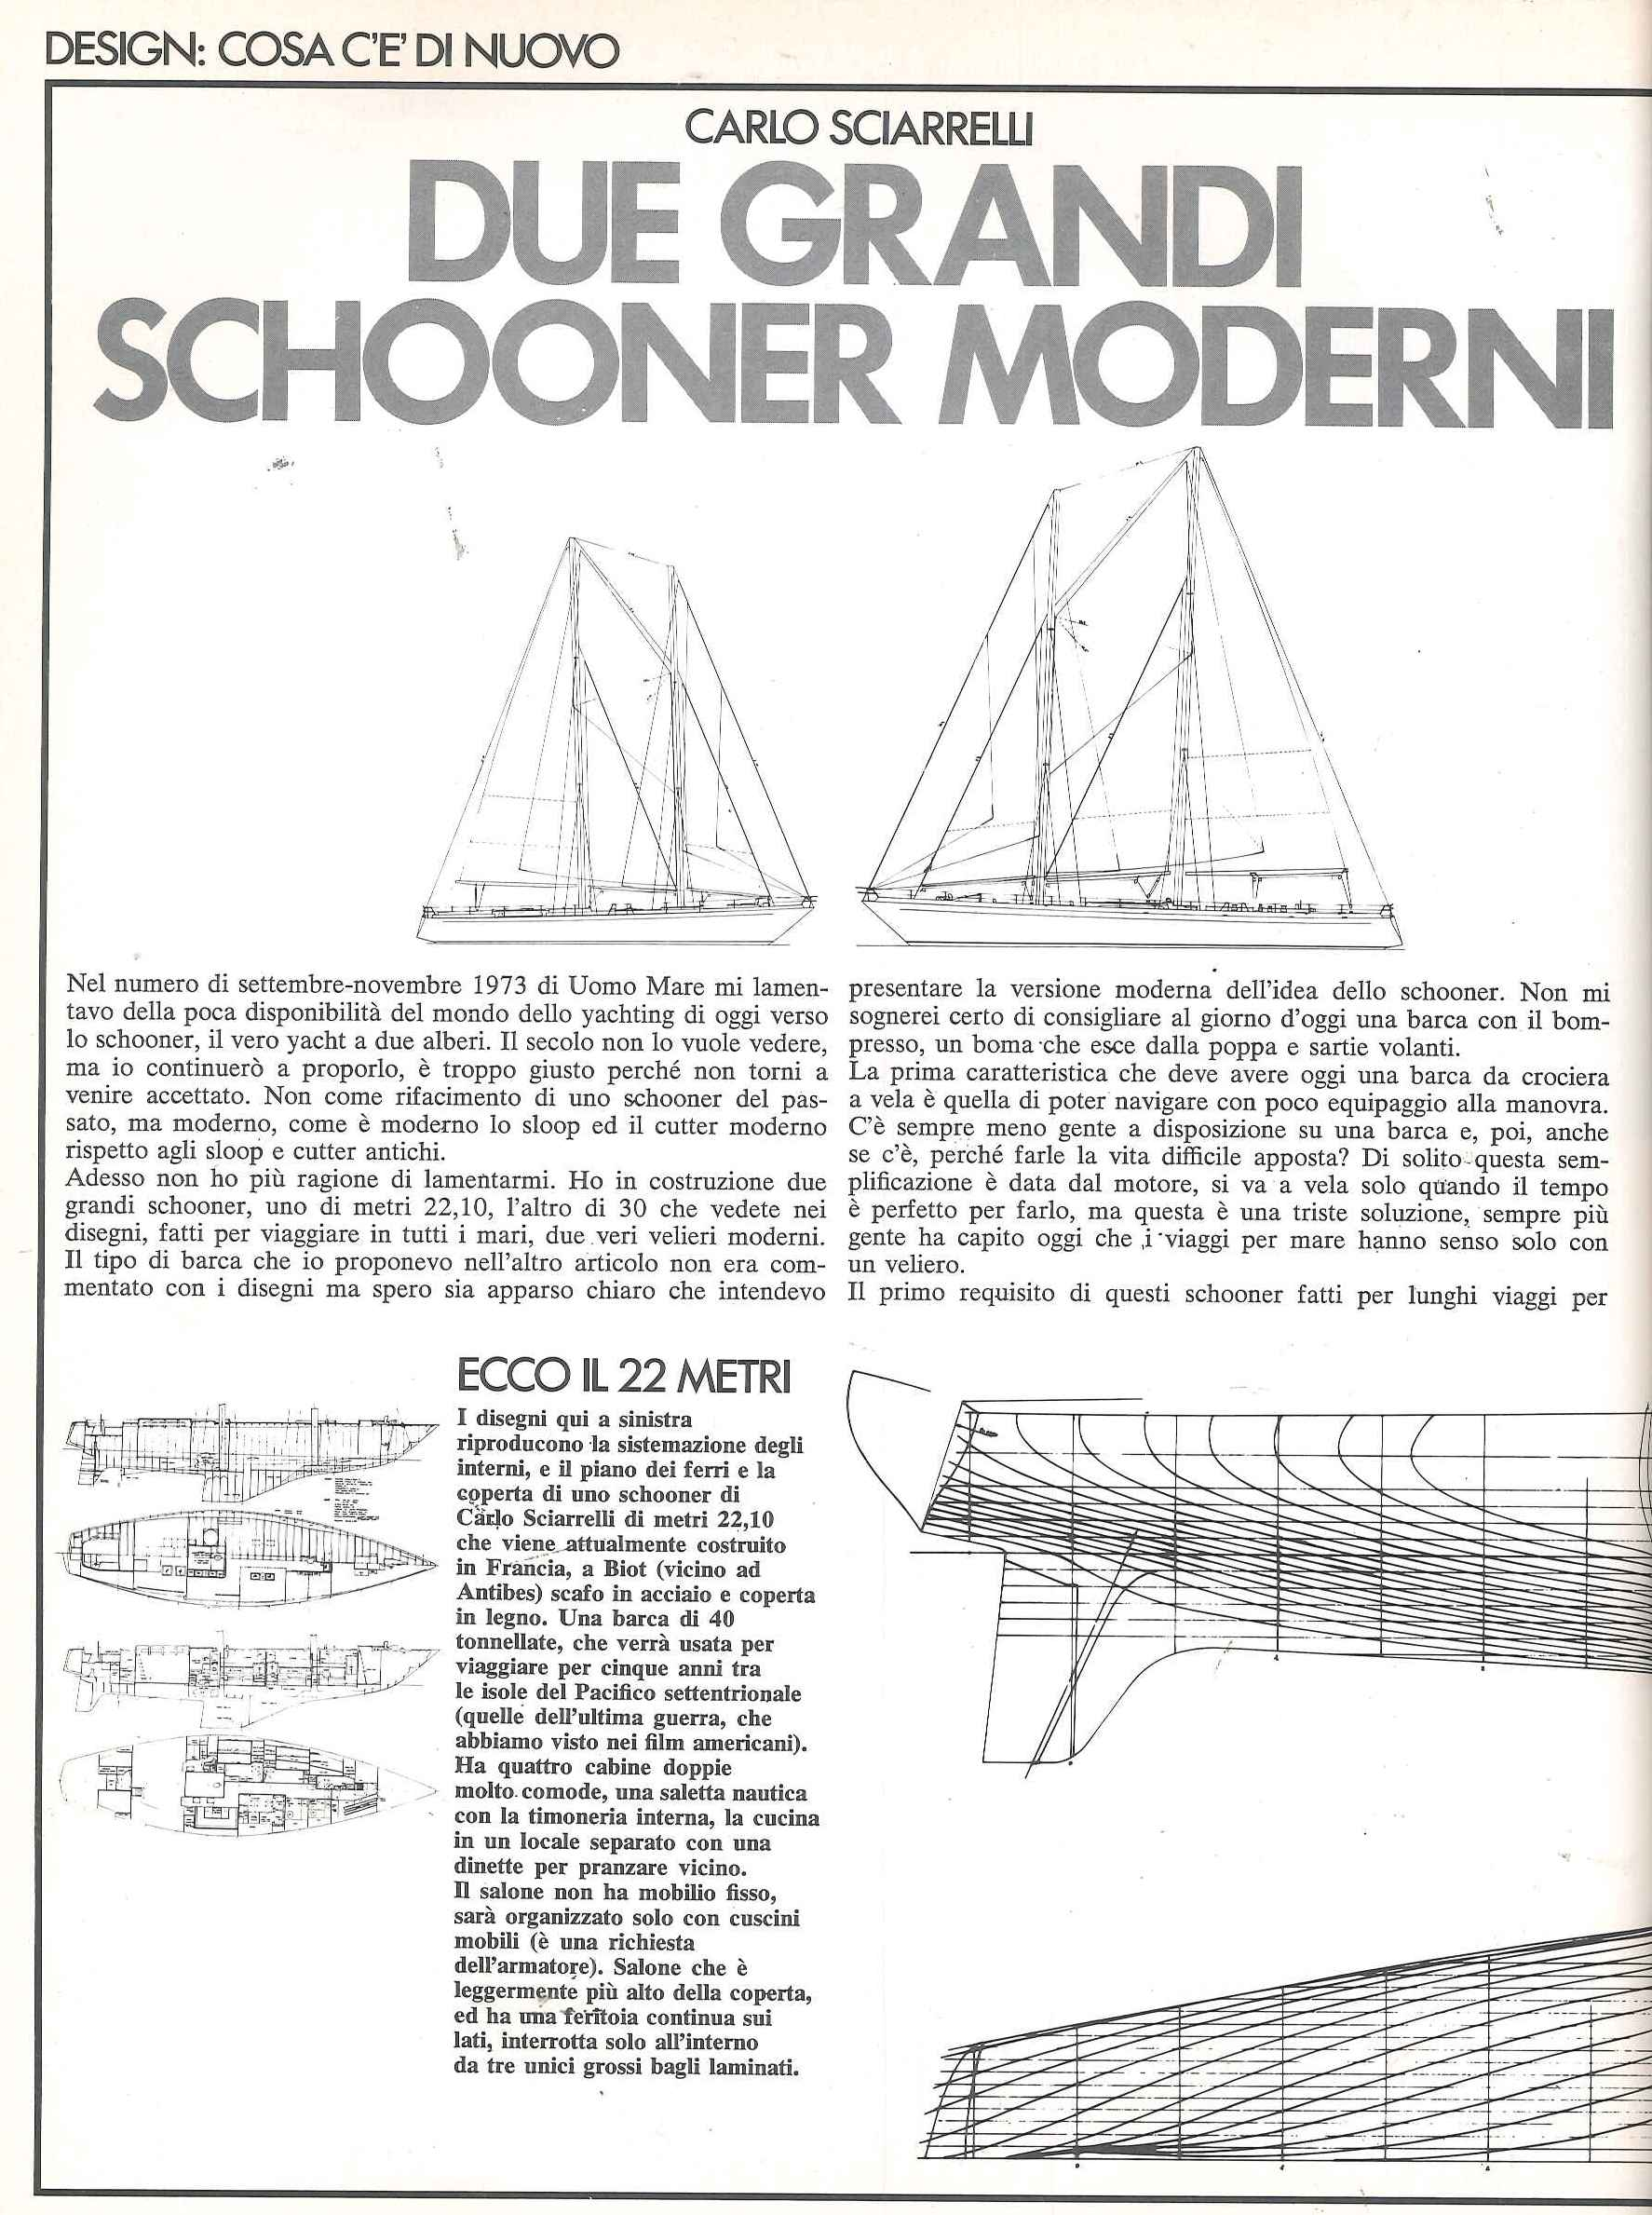 1975 03 PRESS SHOONER 30M uomo mare n°9 (01).jpg